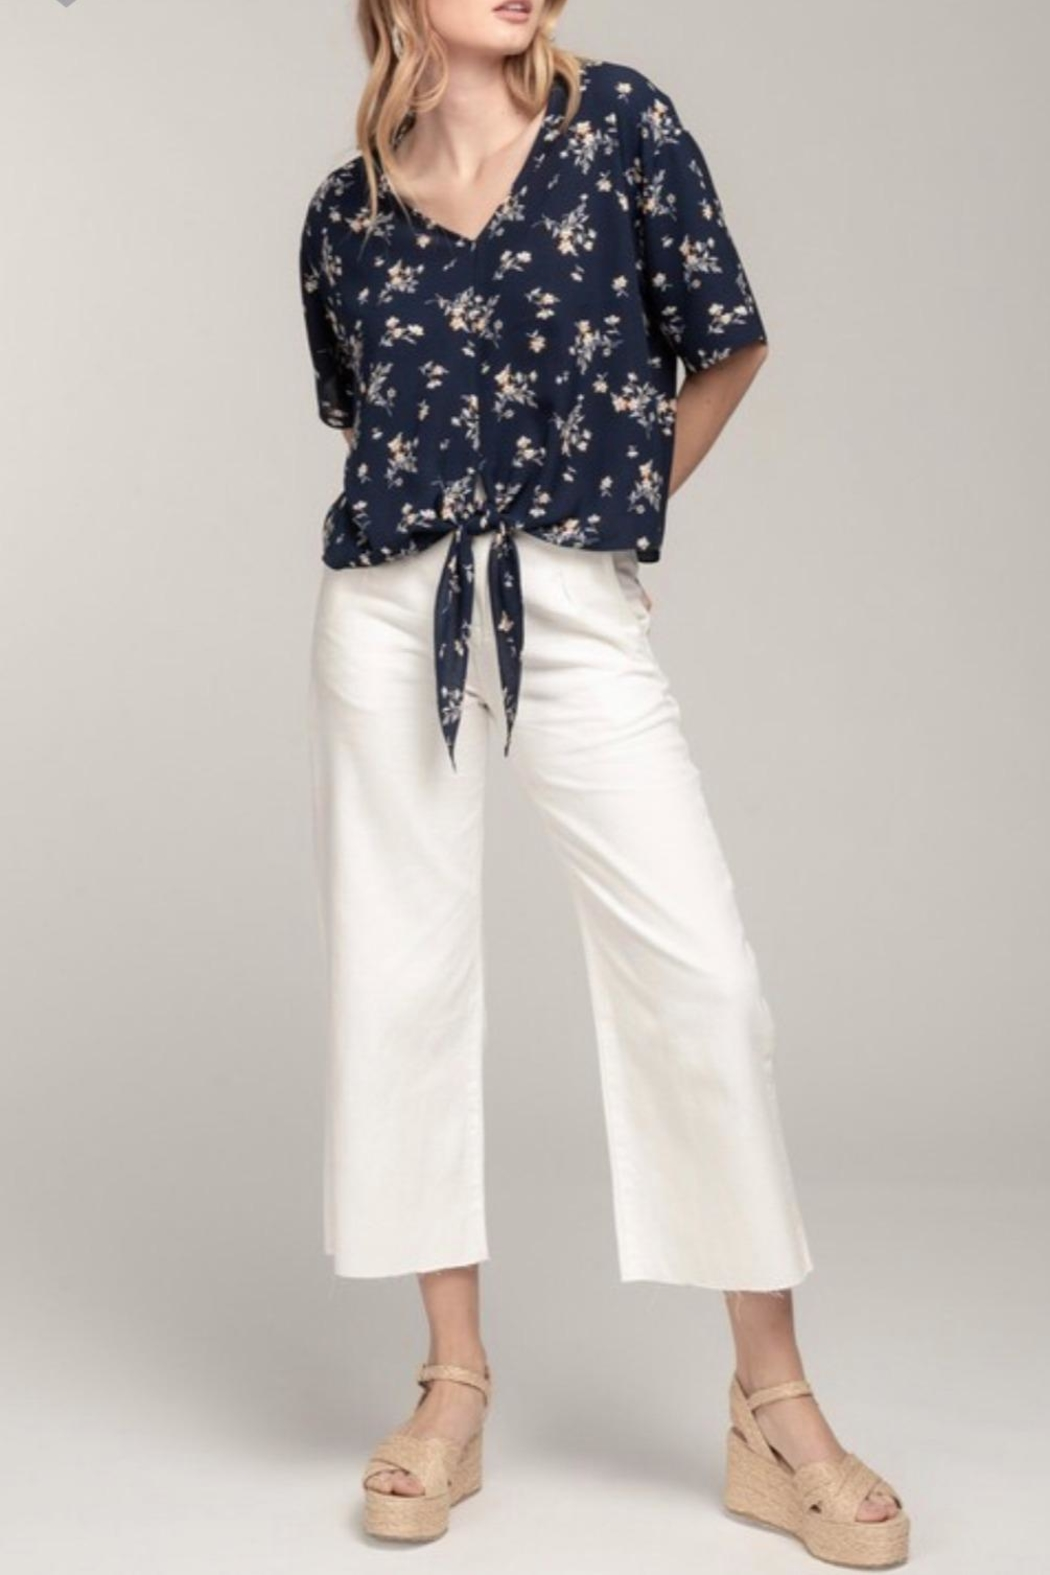 Everly Navy Floral Top - Front Full Image